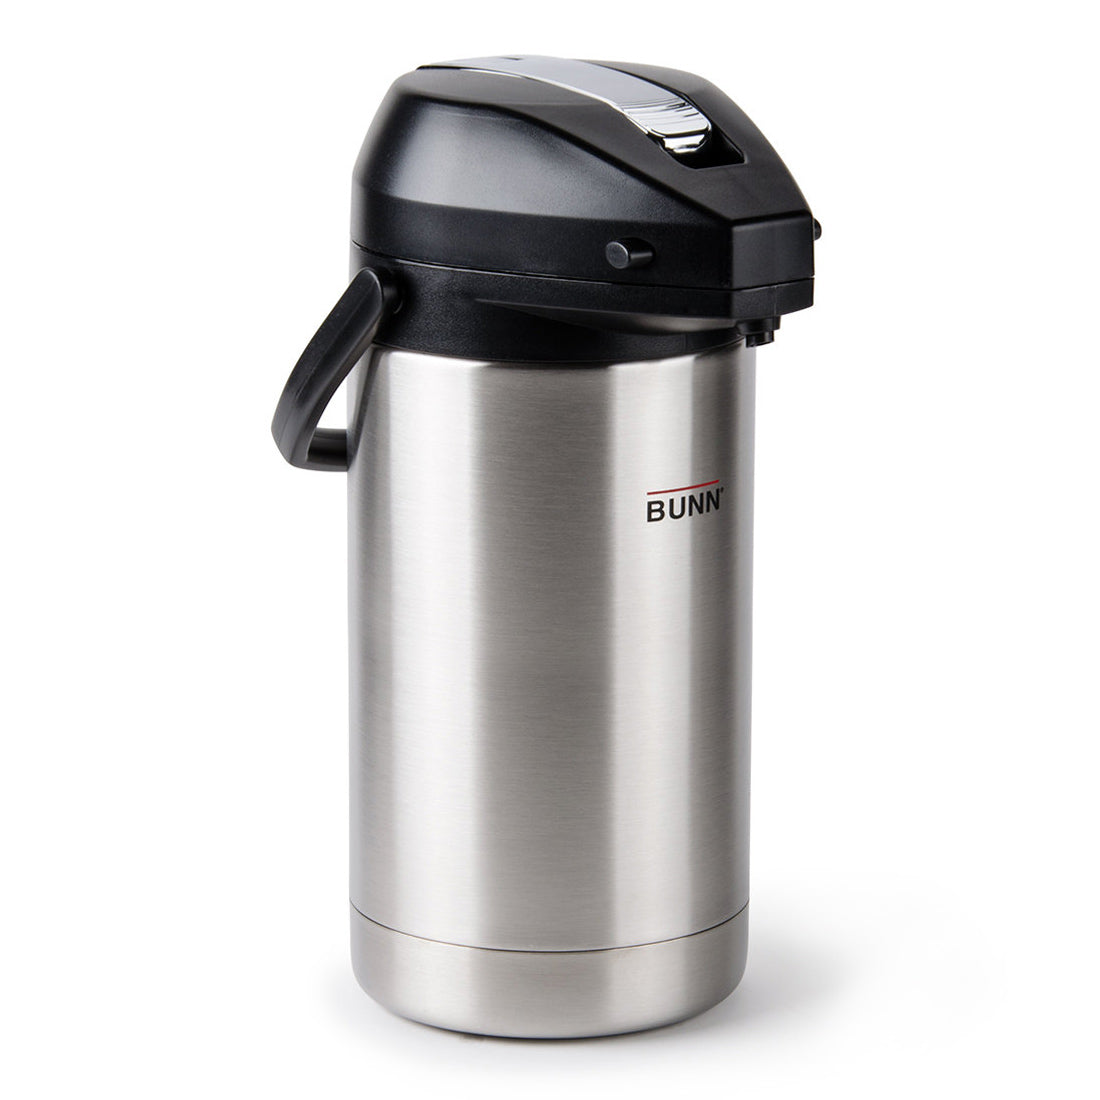 BUNN 3.0 Liter Stainless Steel Thermal - 1 Gallon Setup - hero-in coffee